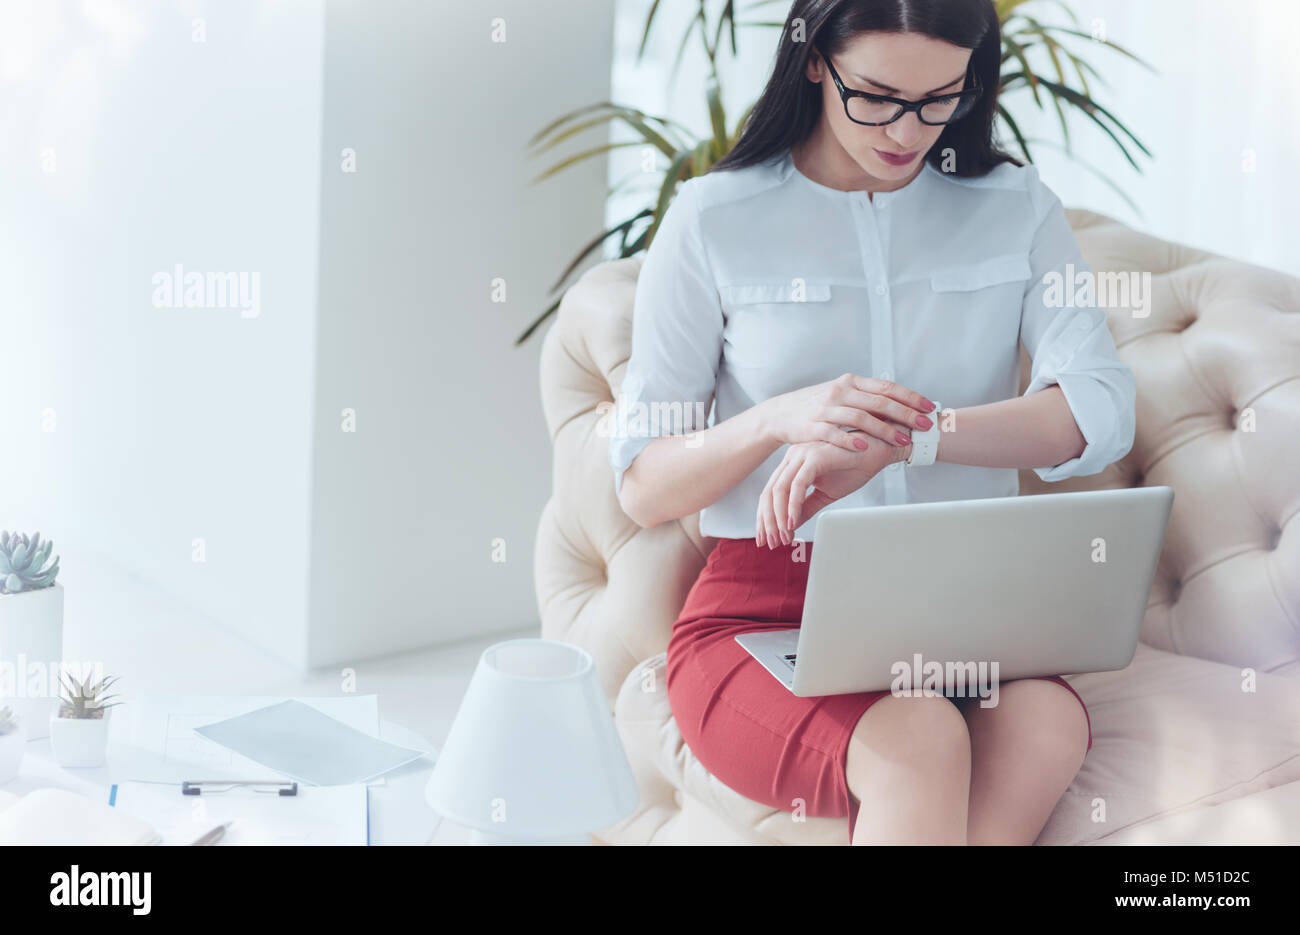 Business woman looking at wrist watch while waiting for client - Stock Image